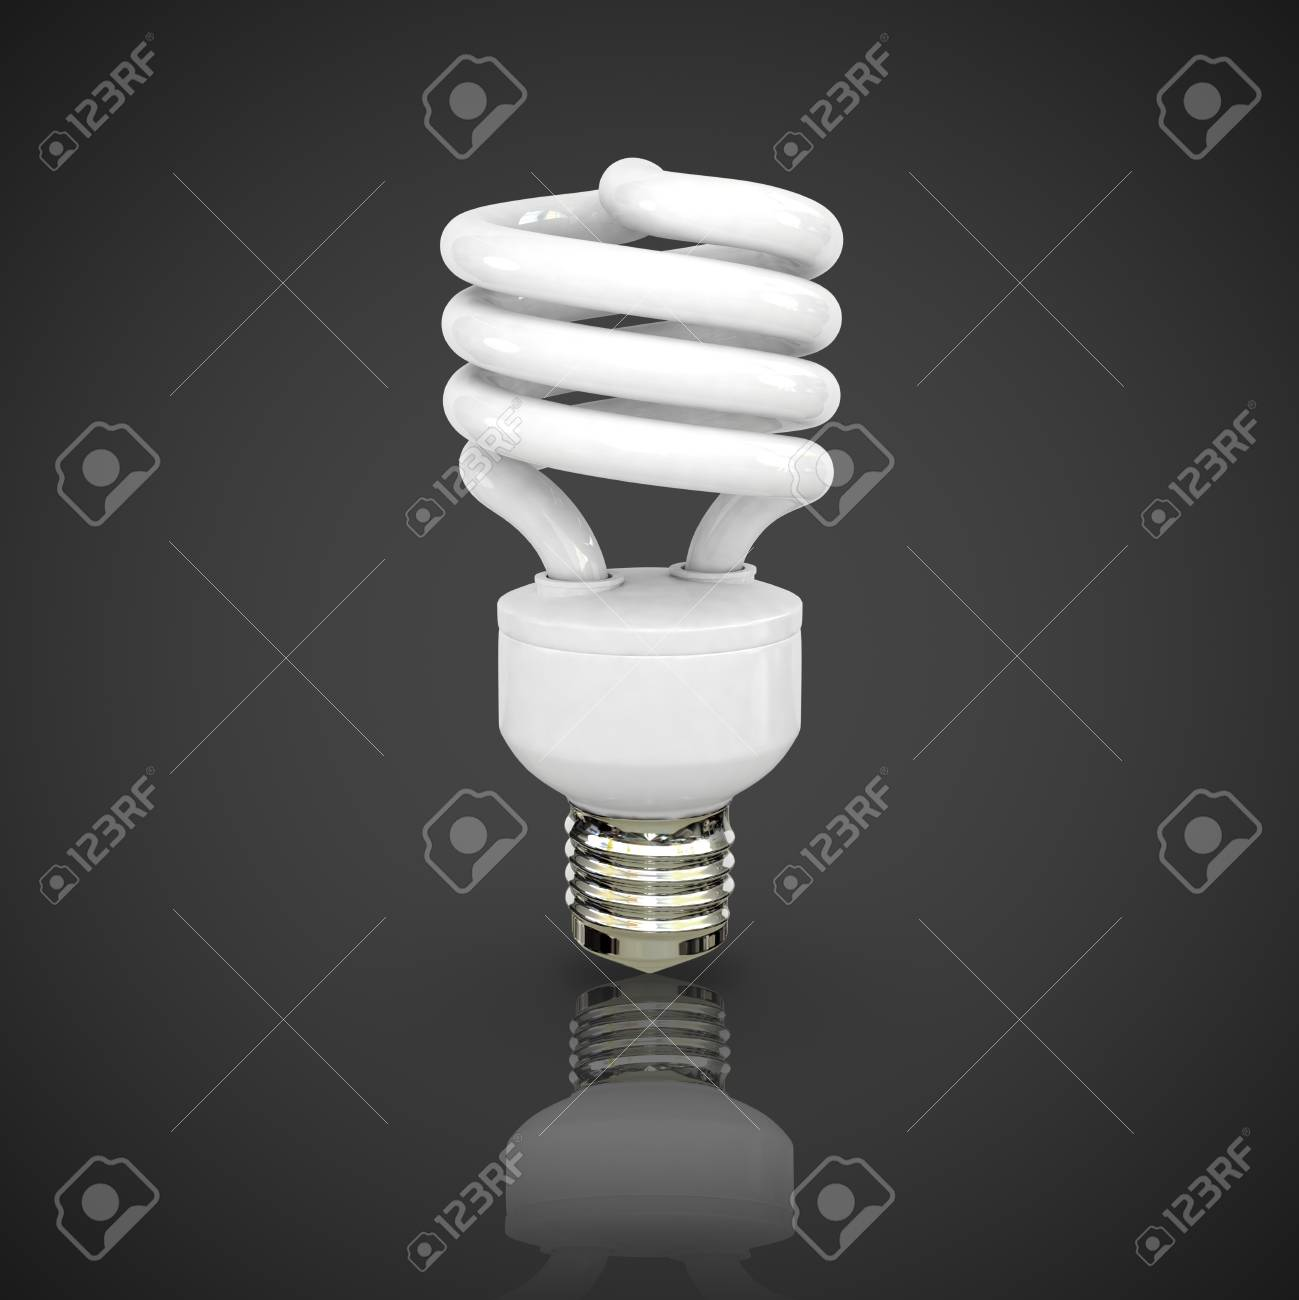 Energy saving fluorescent lightbulb on black background Stock Photo - 17686602